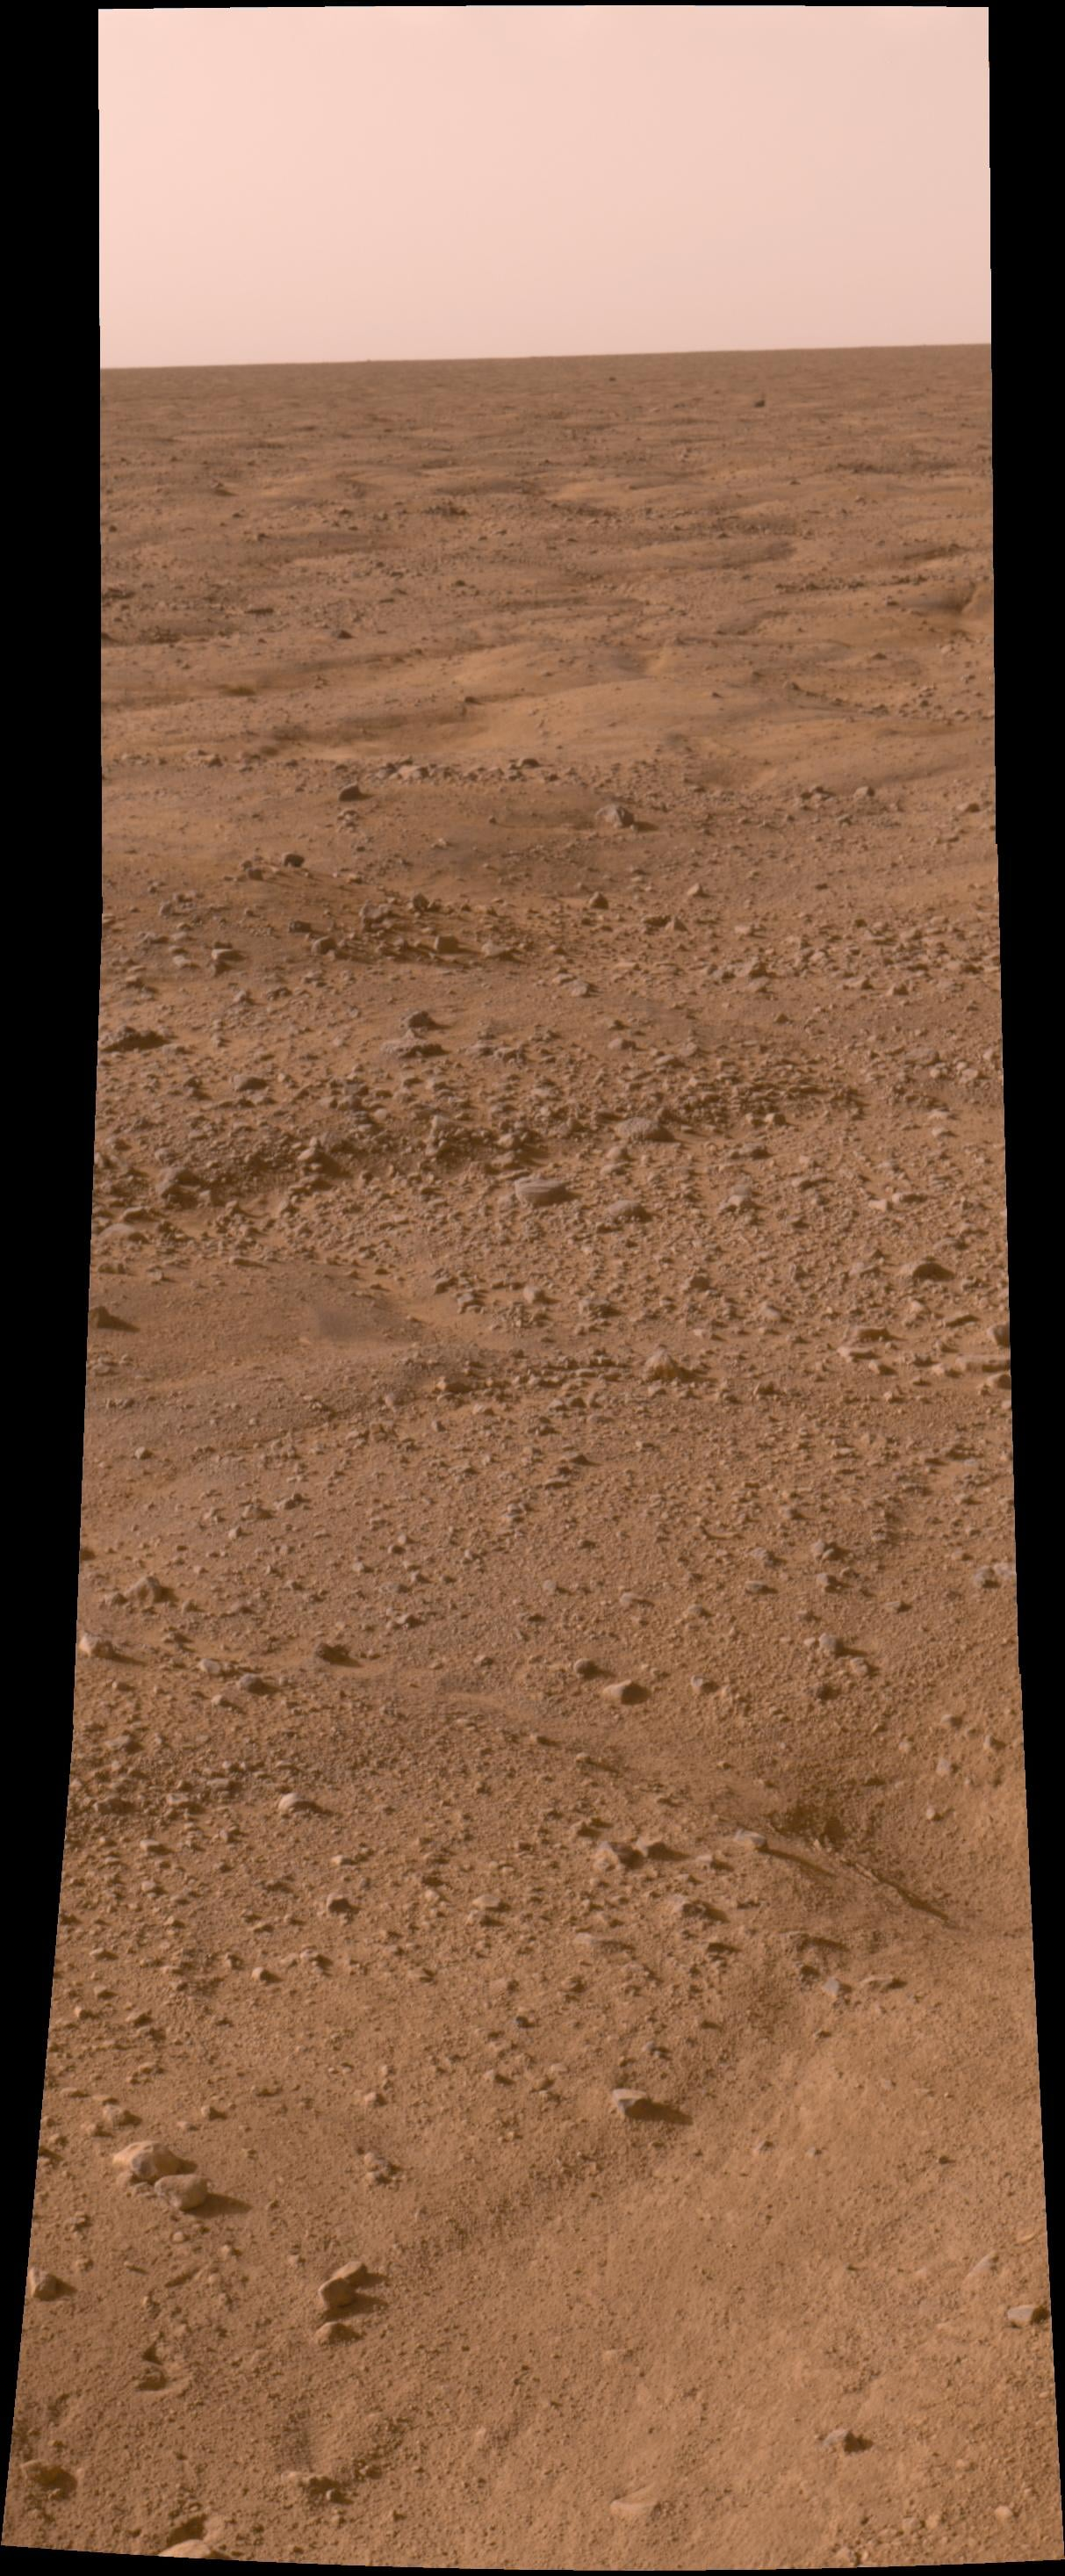 The plains of the northern polar region of Mars.